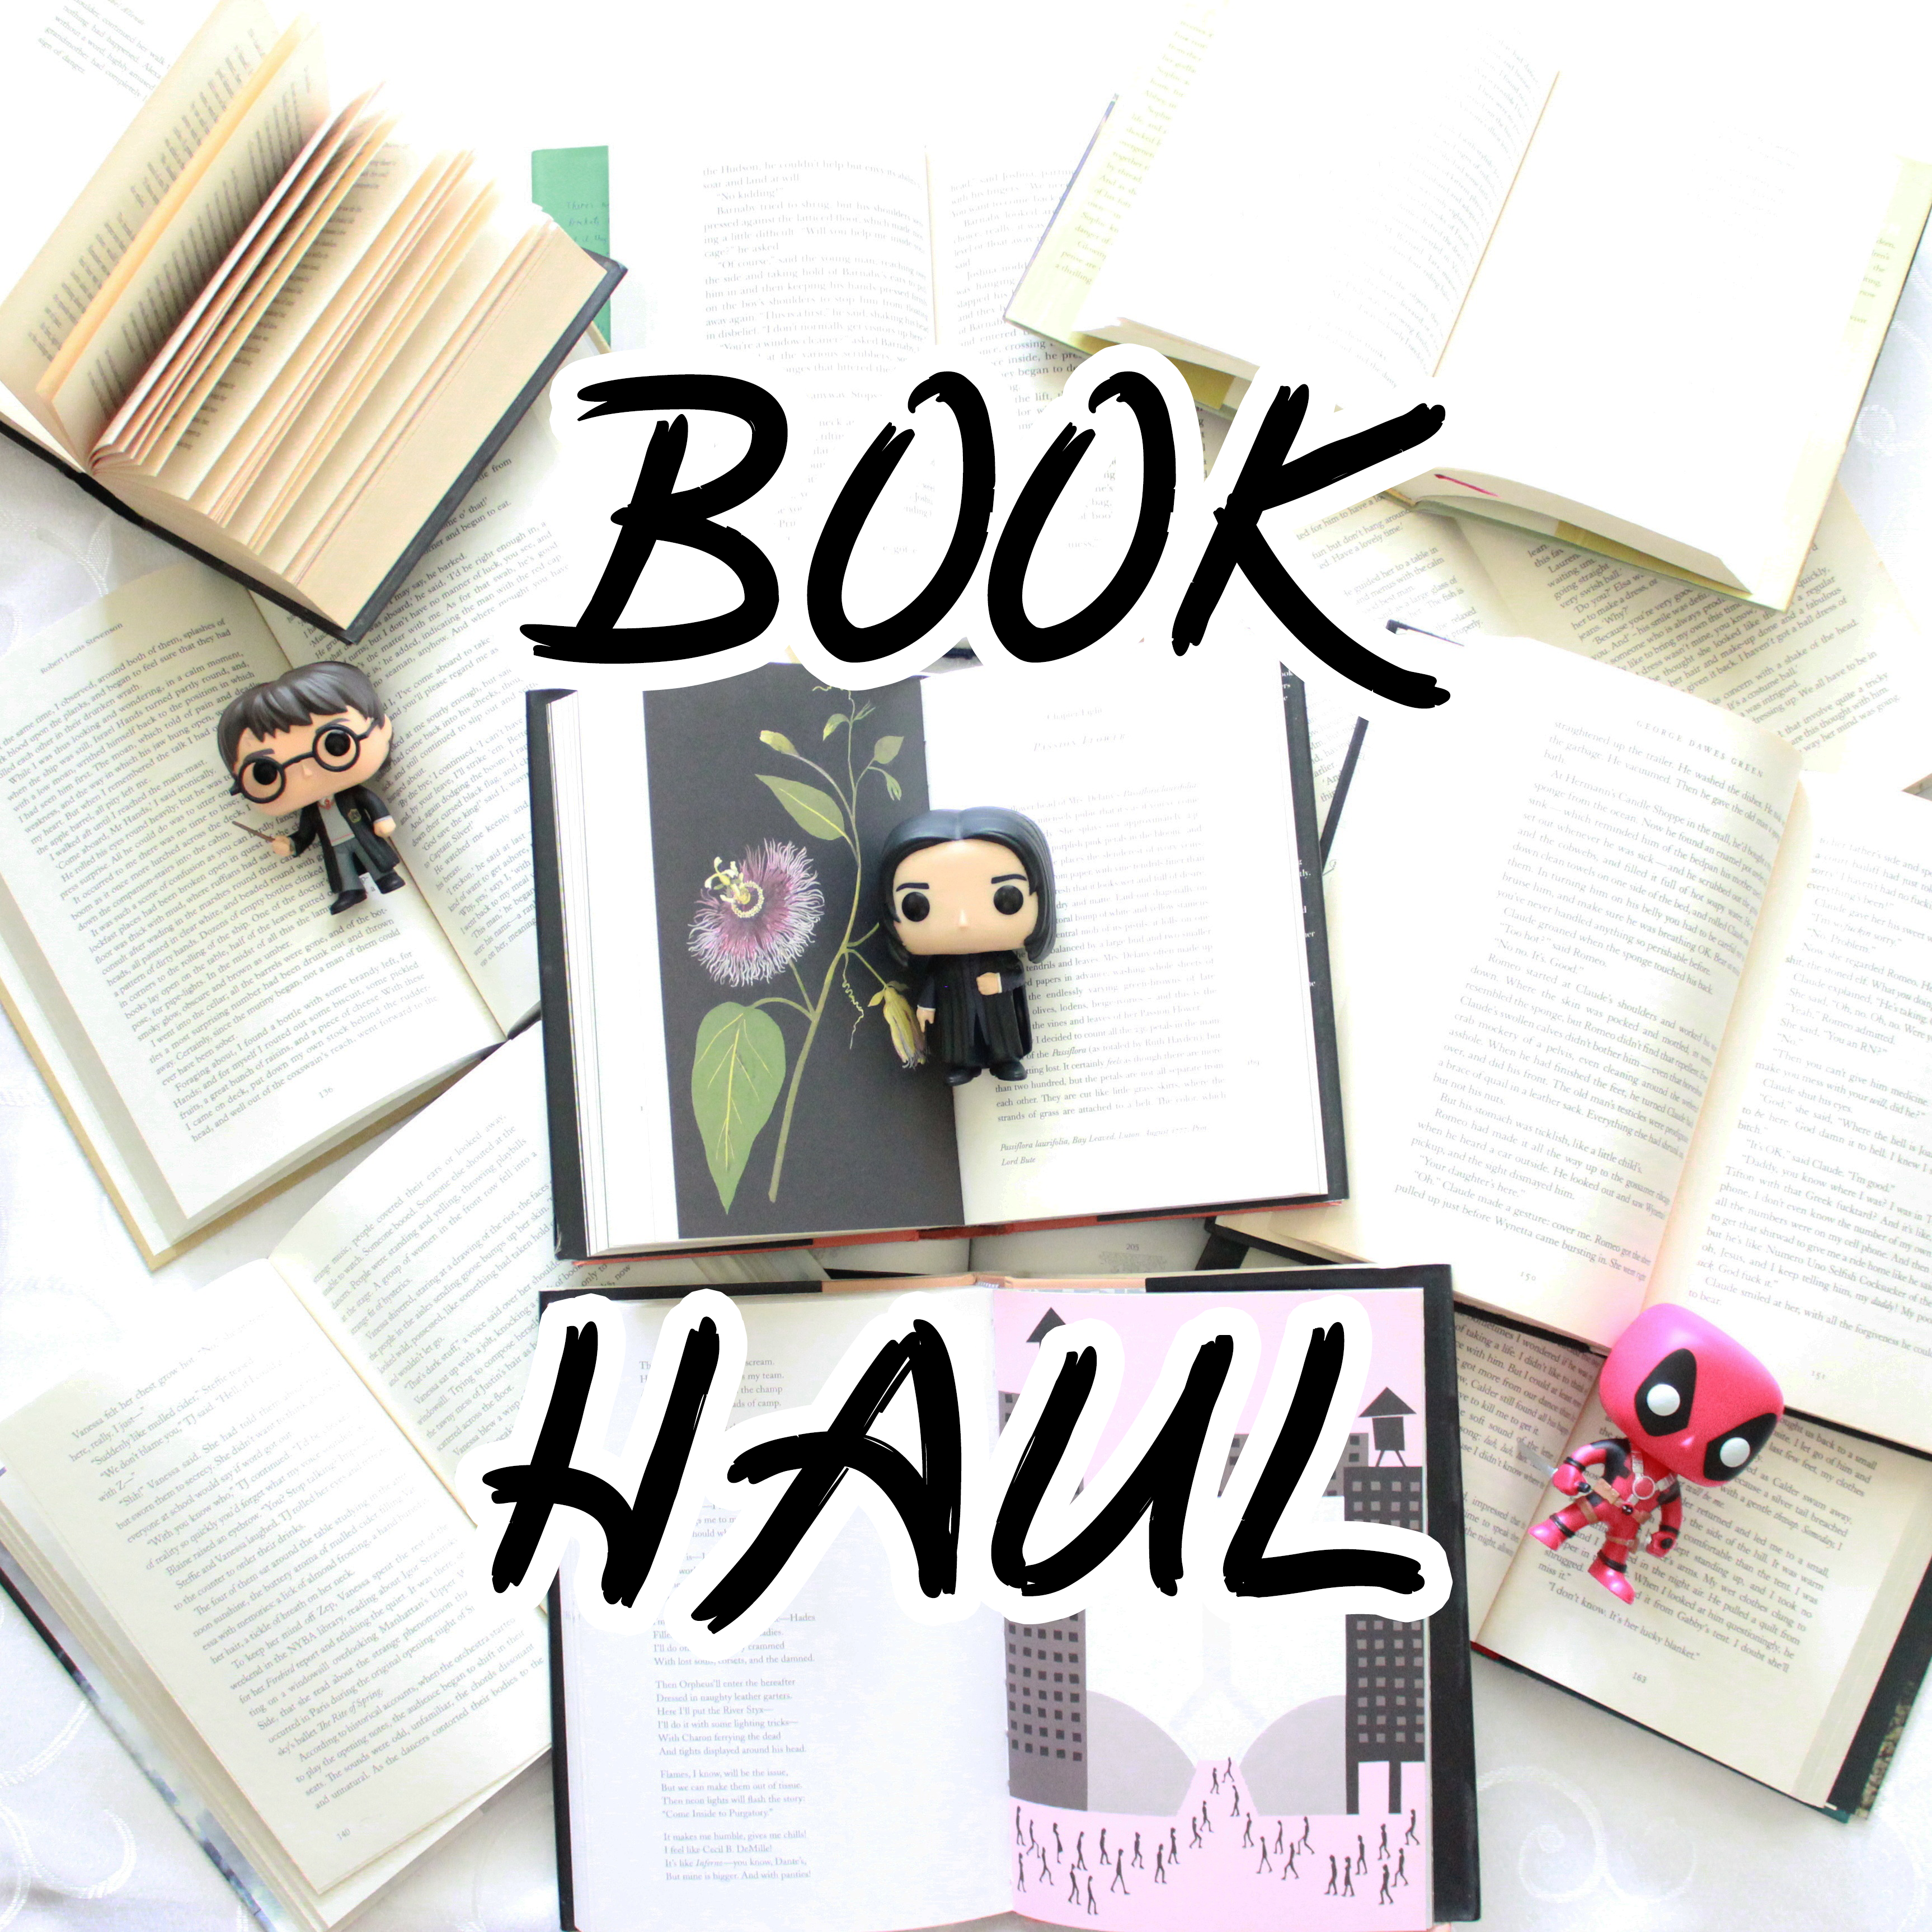 7] Book Haul! (I should maybe never go to another Big Bad